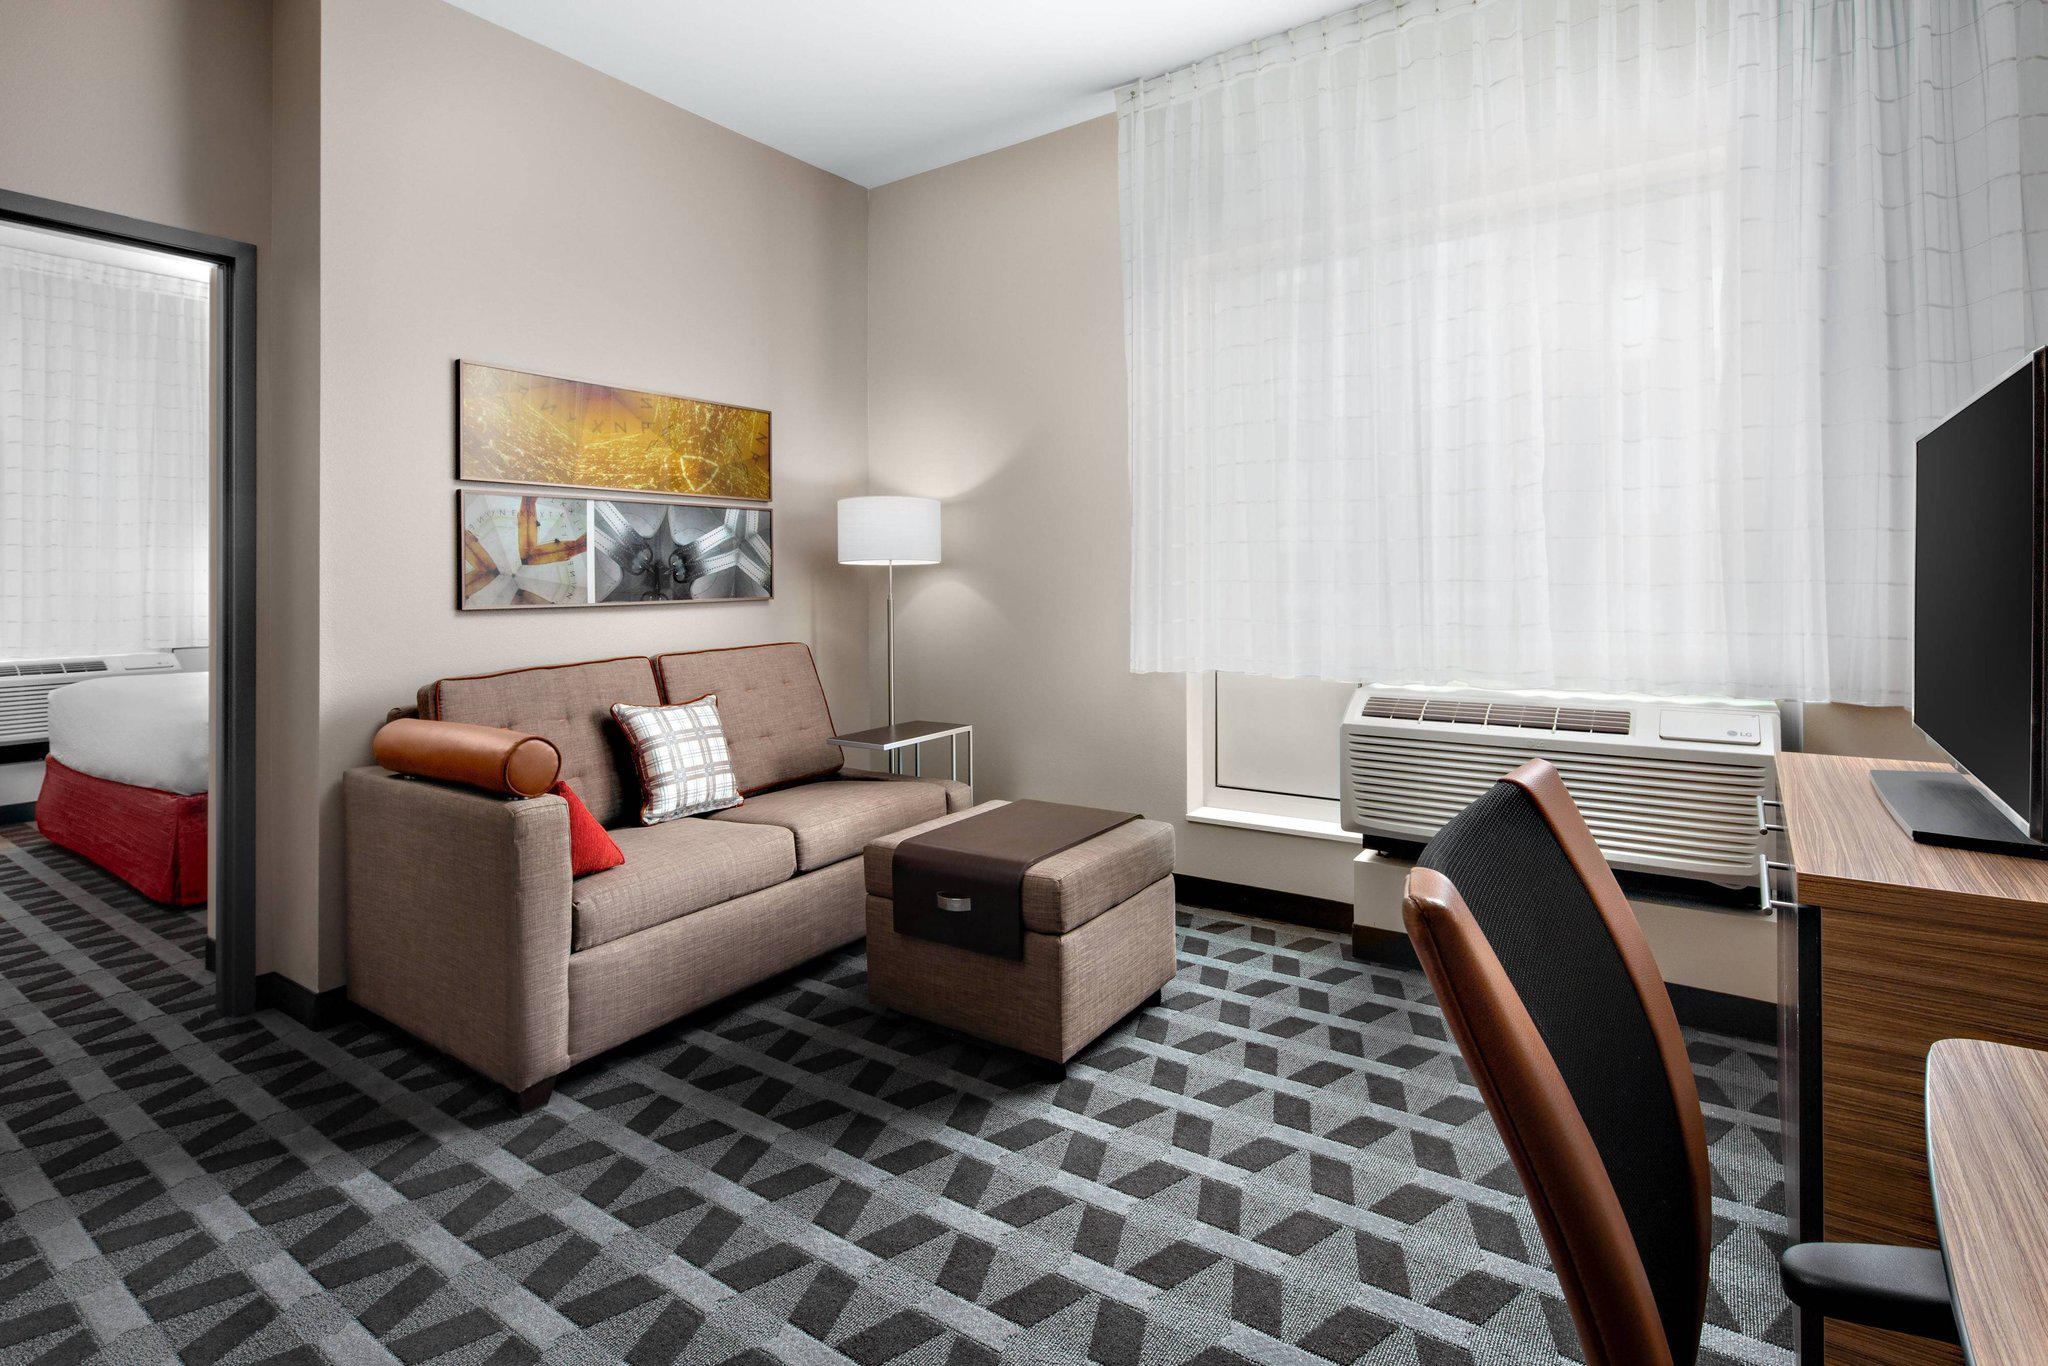 TownePlace Suites by Marriott Loveland Fort Collins